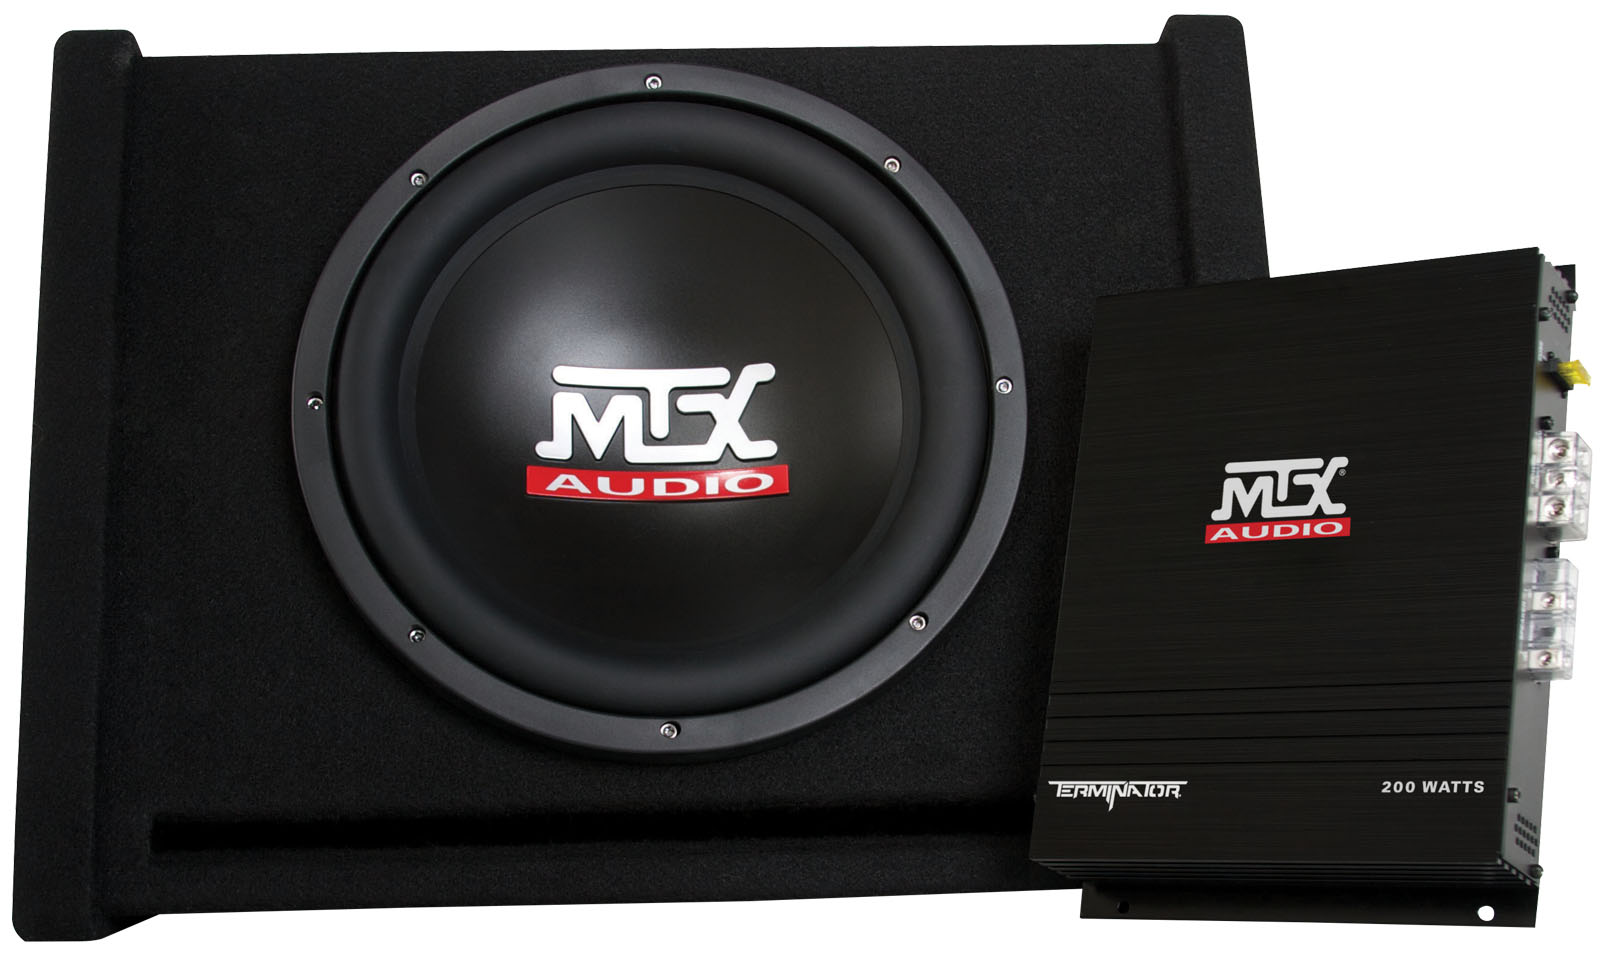 0004183_terminator tnp112d 12 inch 200w rms vented enclosure and mono block amplifier tnp112d mtx car subwoofer enclosure and amplifier mtx audio Terminator Time Loop Diagram at mr168.co